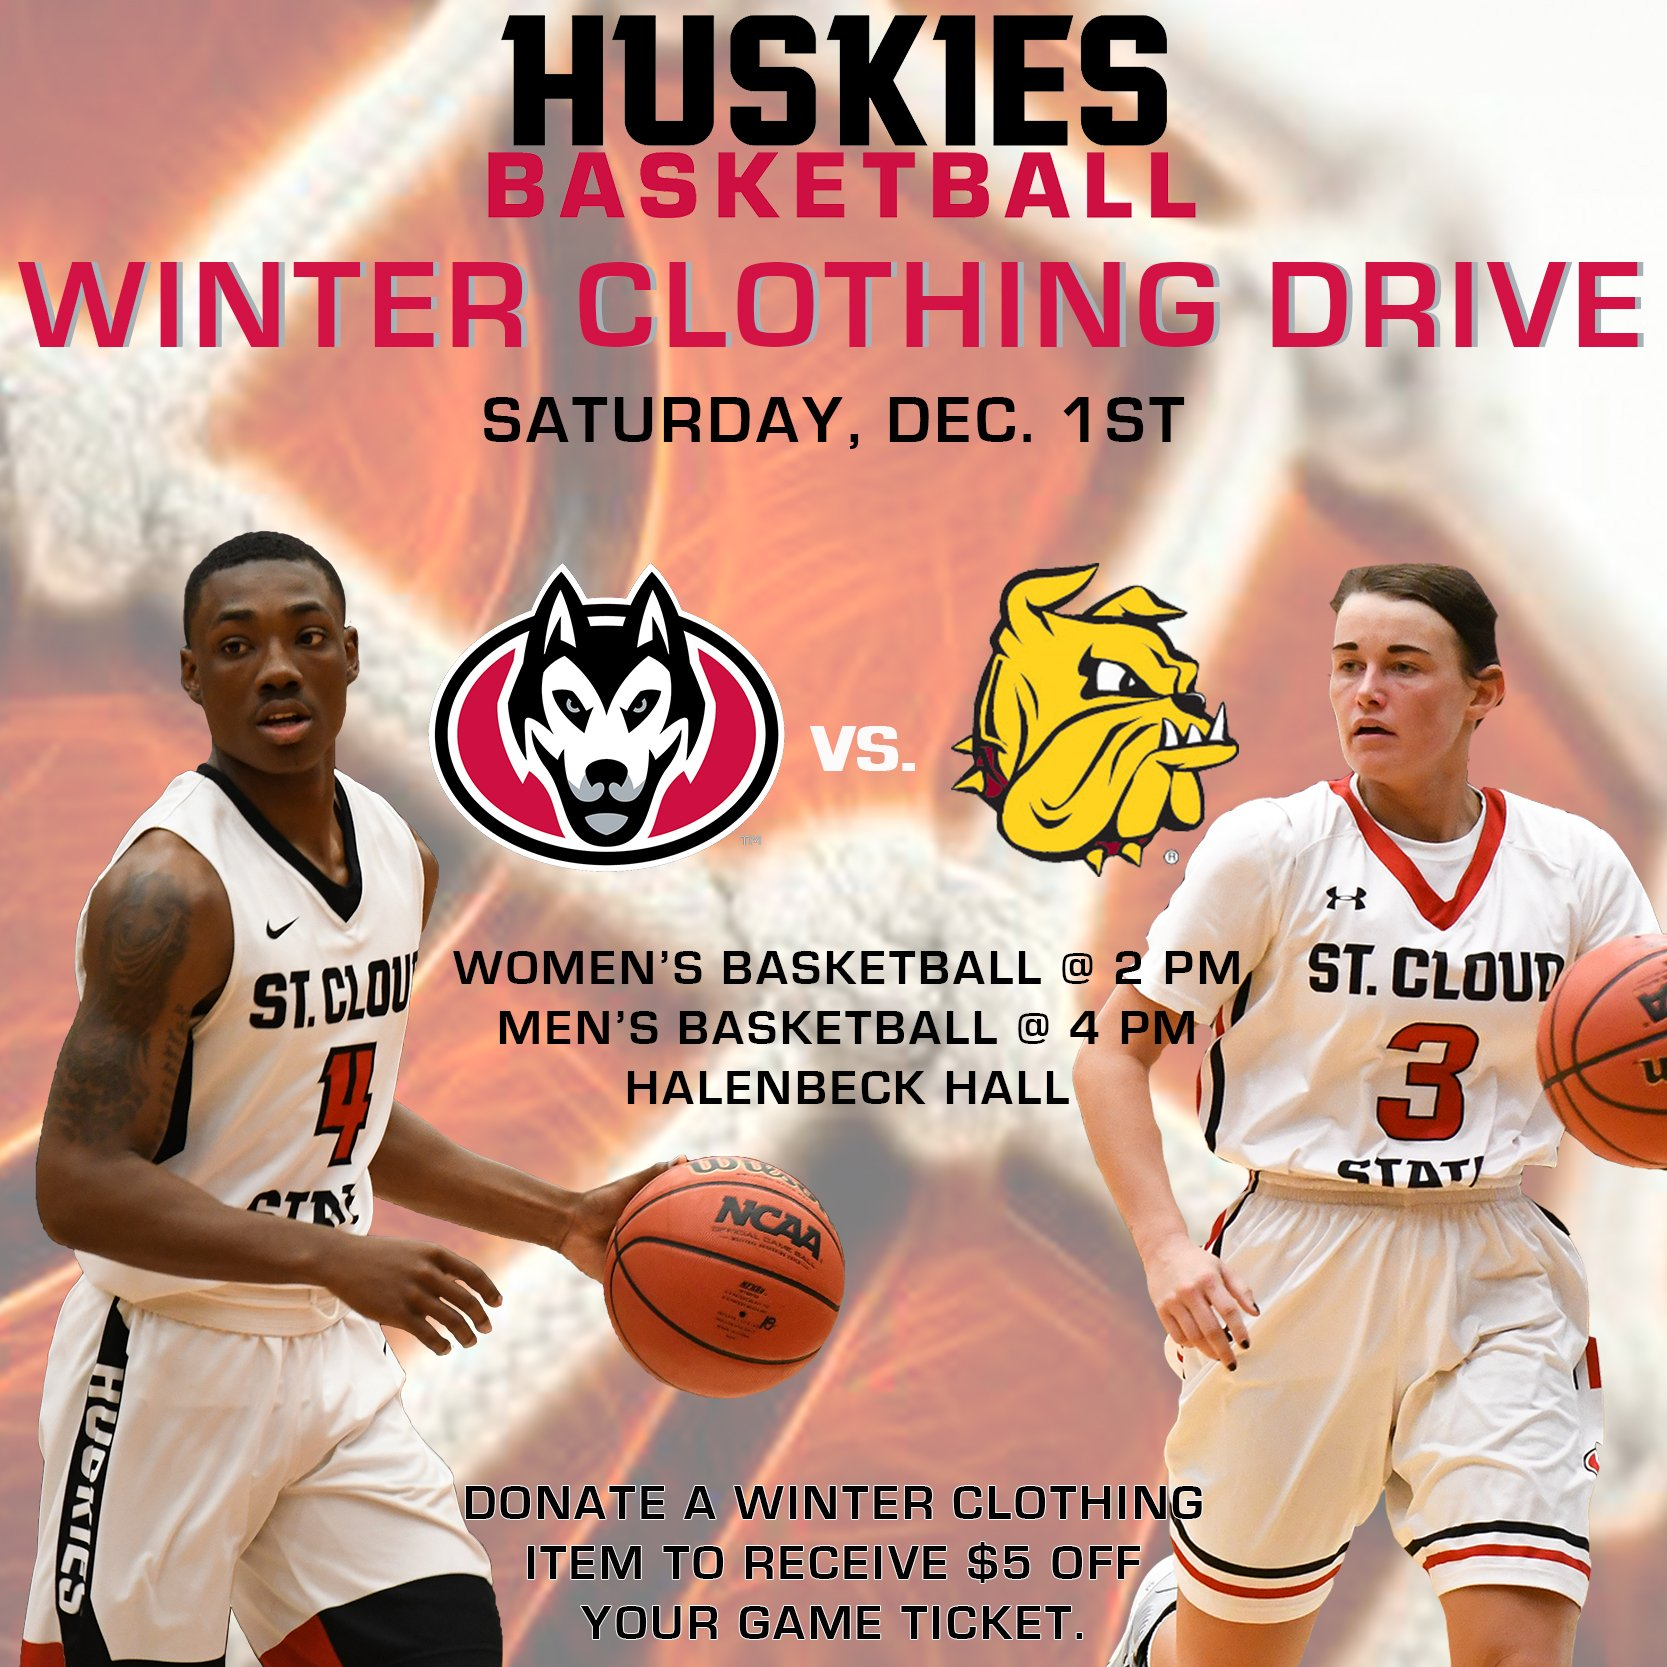 Scsu Huskies On Twitter Basketball Action Is Back As Scsuhuskies Wbb Scsumensbball Open Northernsunconf Action Against The Umdbulldogs On Saturday The Huskies Are Collecting Winter Clothing So Bring In Your Winter Clothing